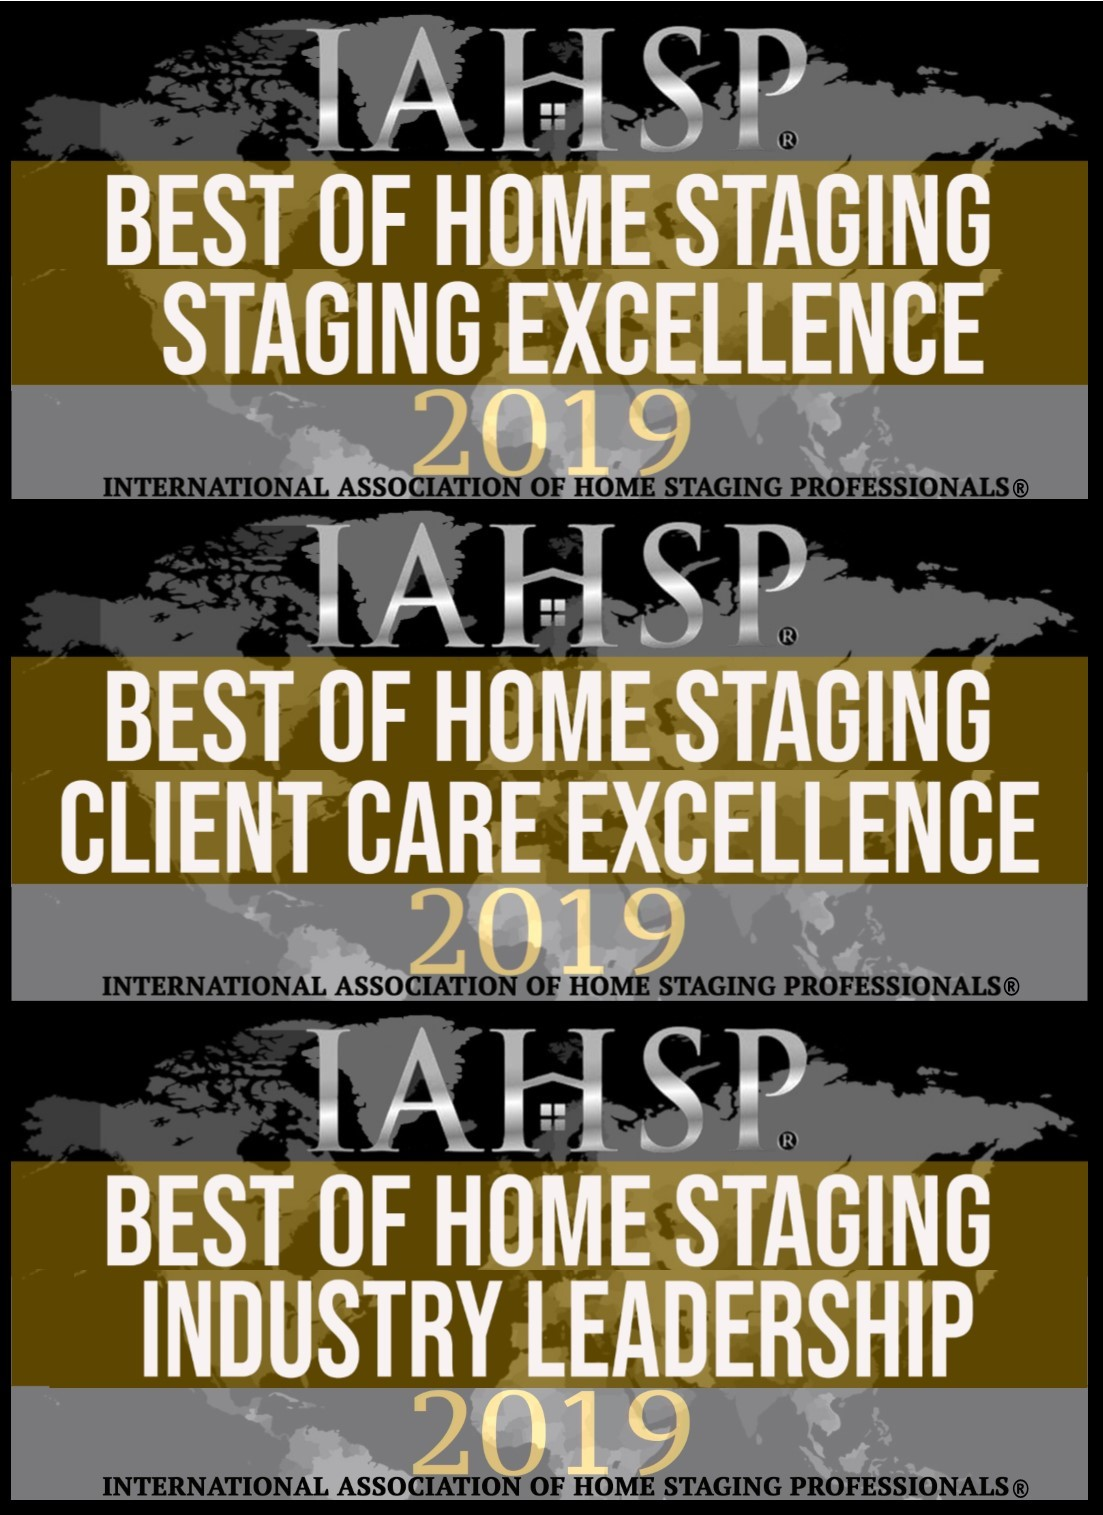 Best of Home Staging Award IAHSP 2018 for Industry Leadership